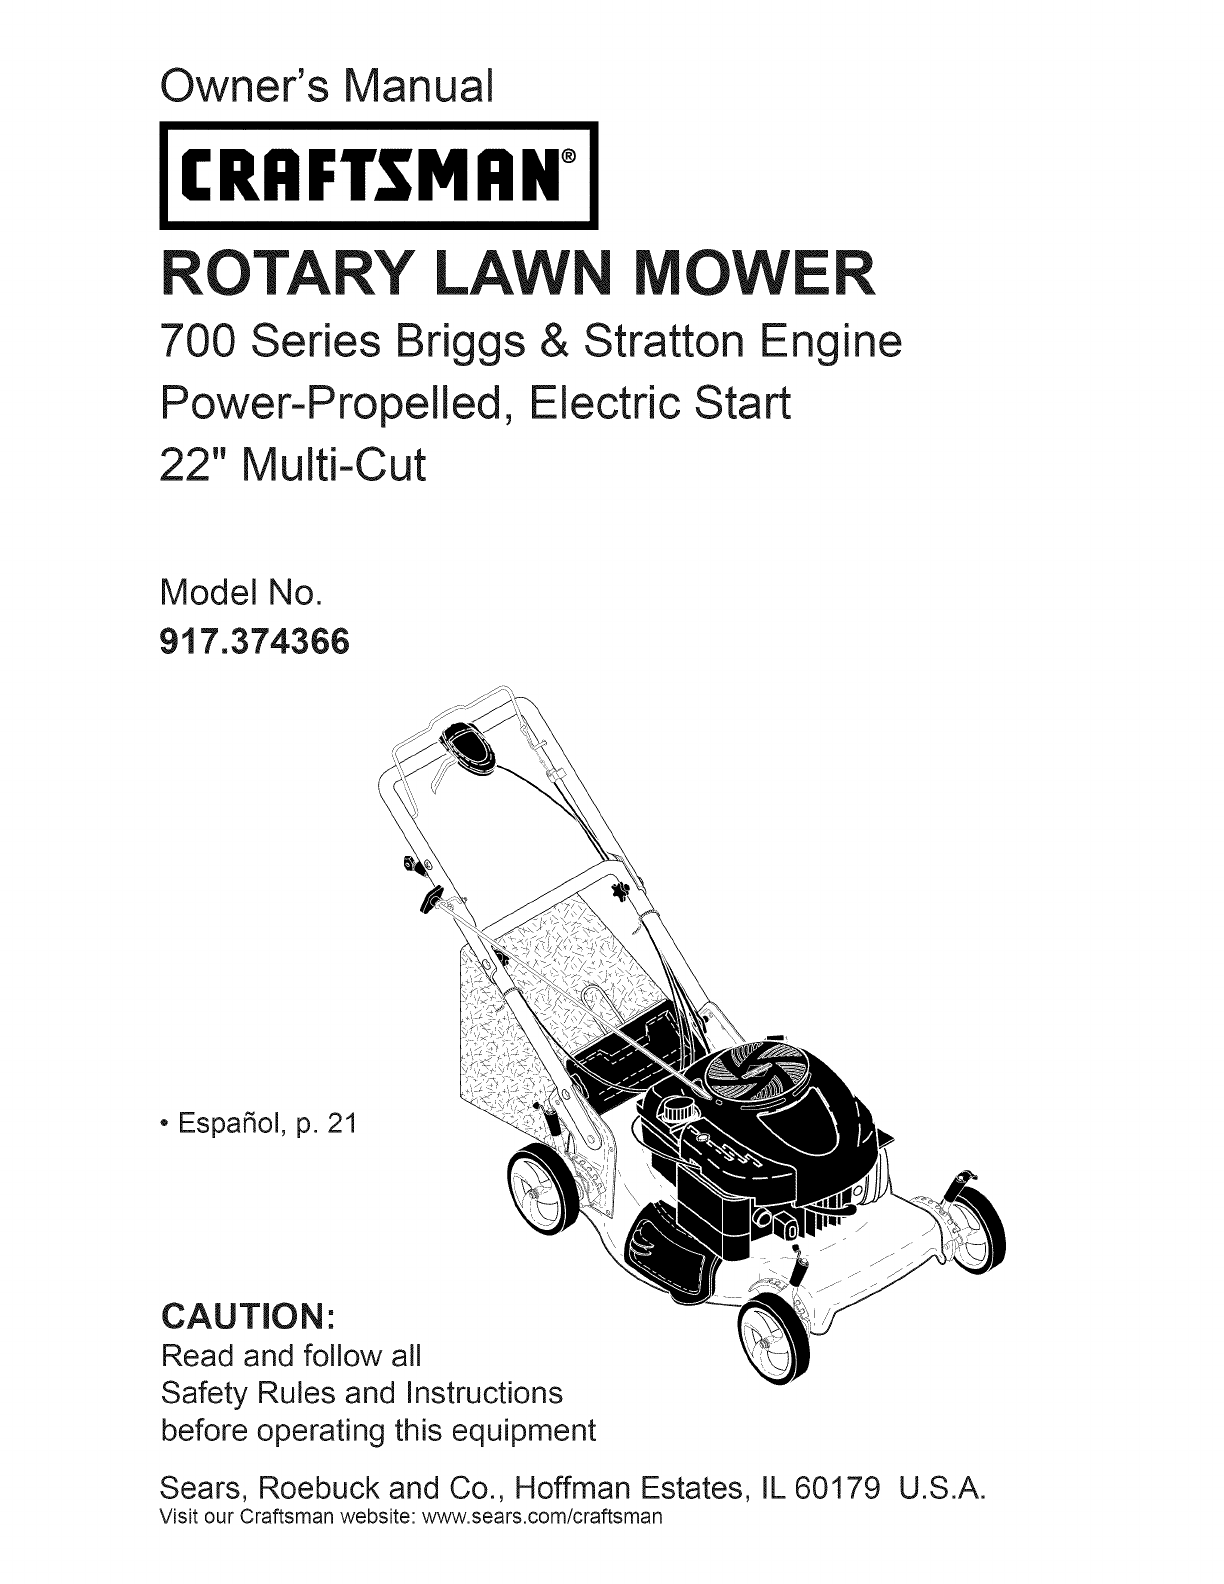 46302d9d e064 41fc 925e e92b09d10320 bg1 craftsman lawn mower 700 series user guide manualsonline com craftsman lawn mower model 917 wiring diagram at creativeand.co